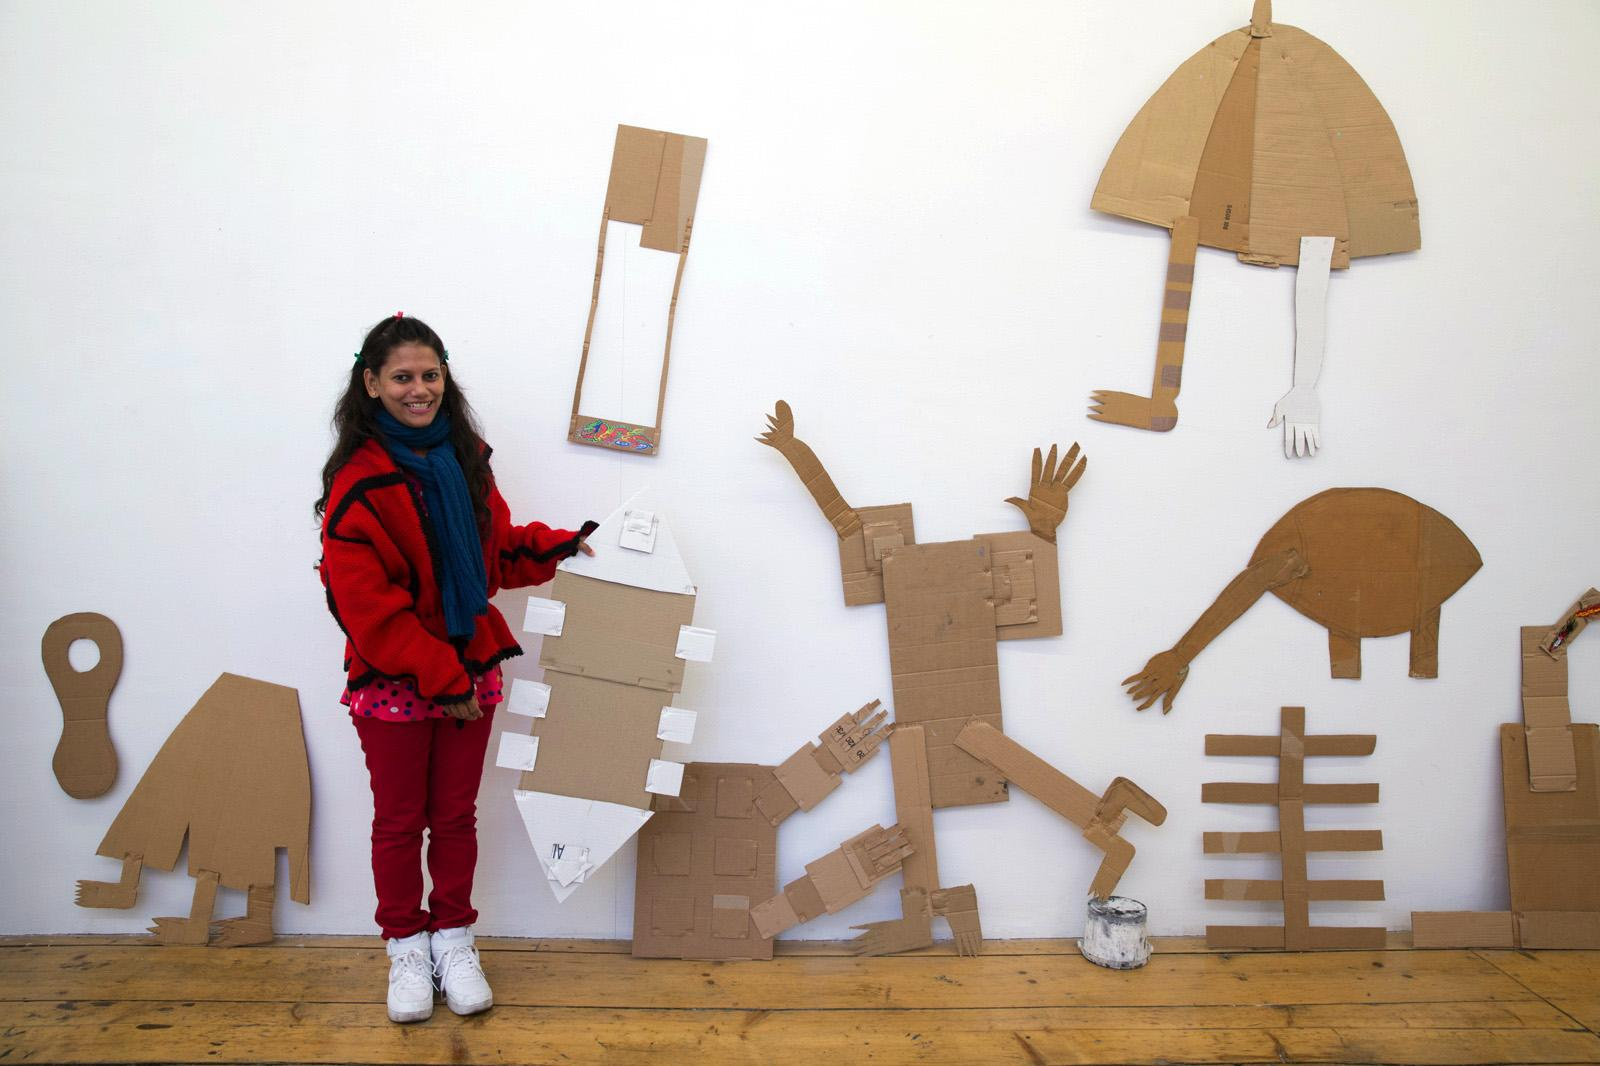 Rini Mitra in front of her artworks Krinzinger Projekte curated by Diana Campbell Betancourt Photo: eSeL